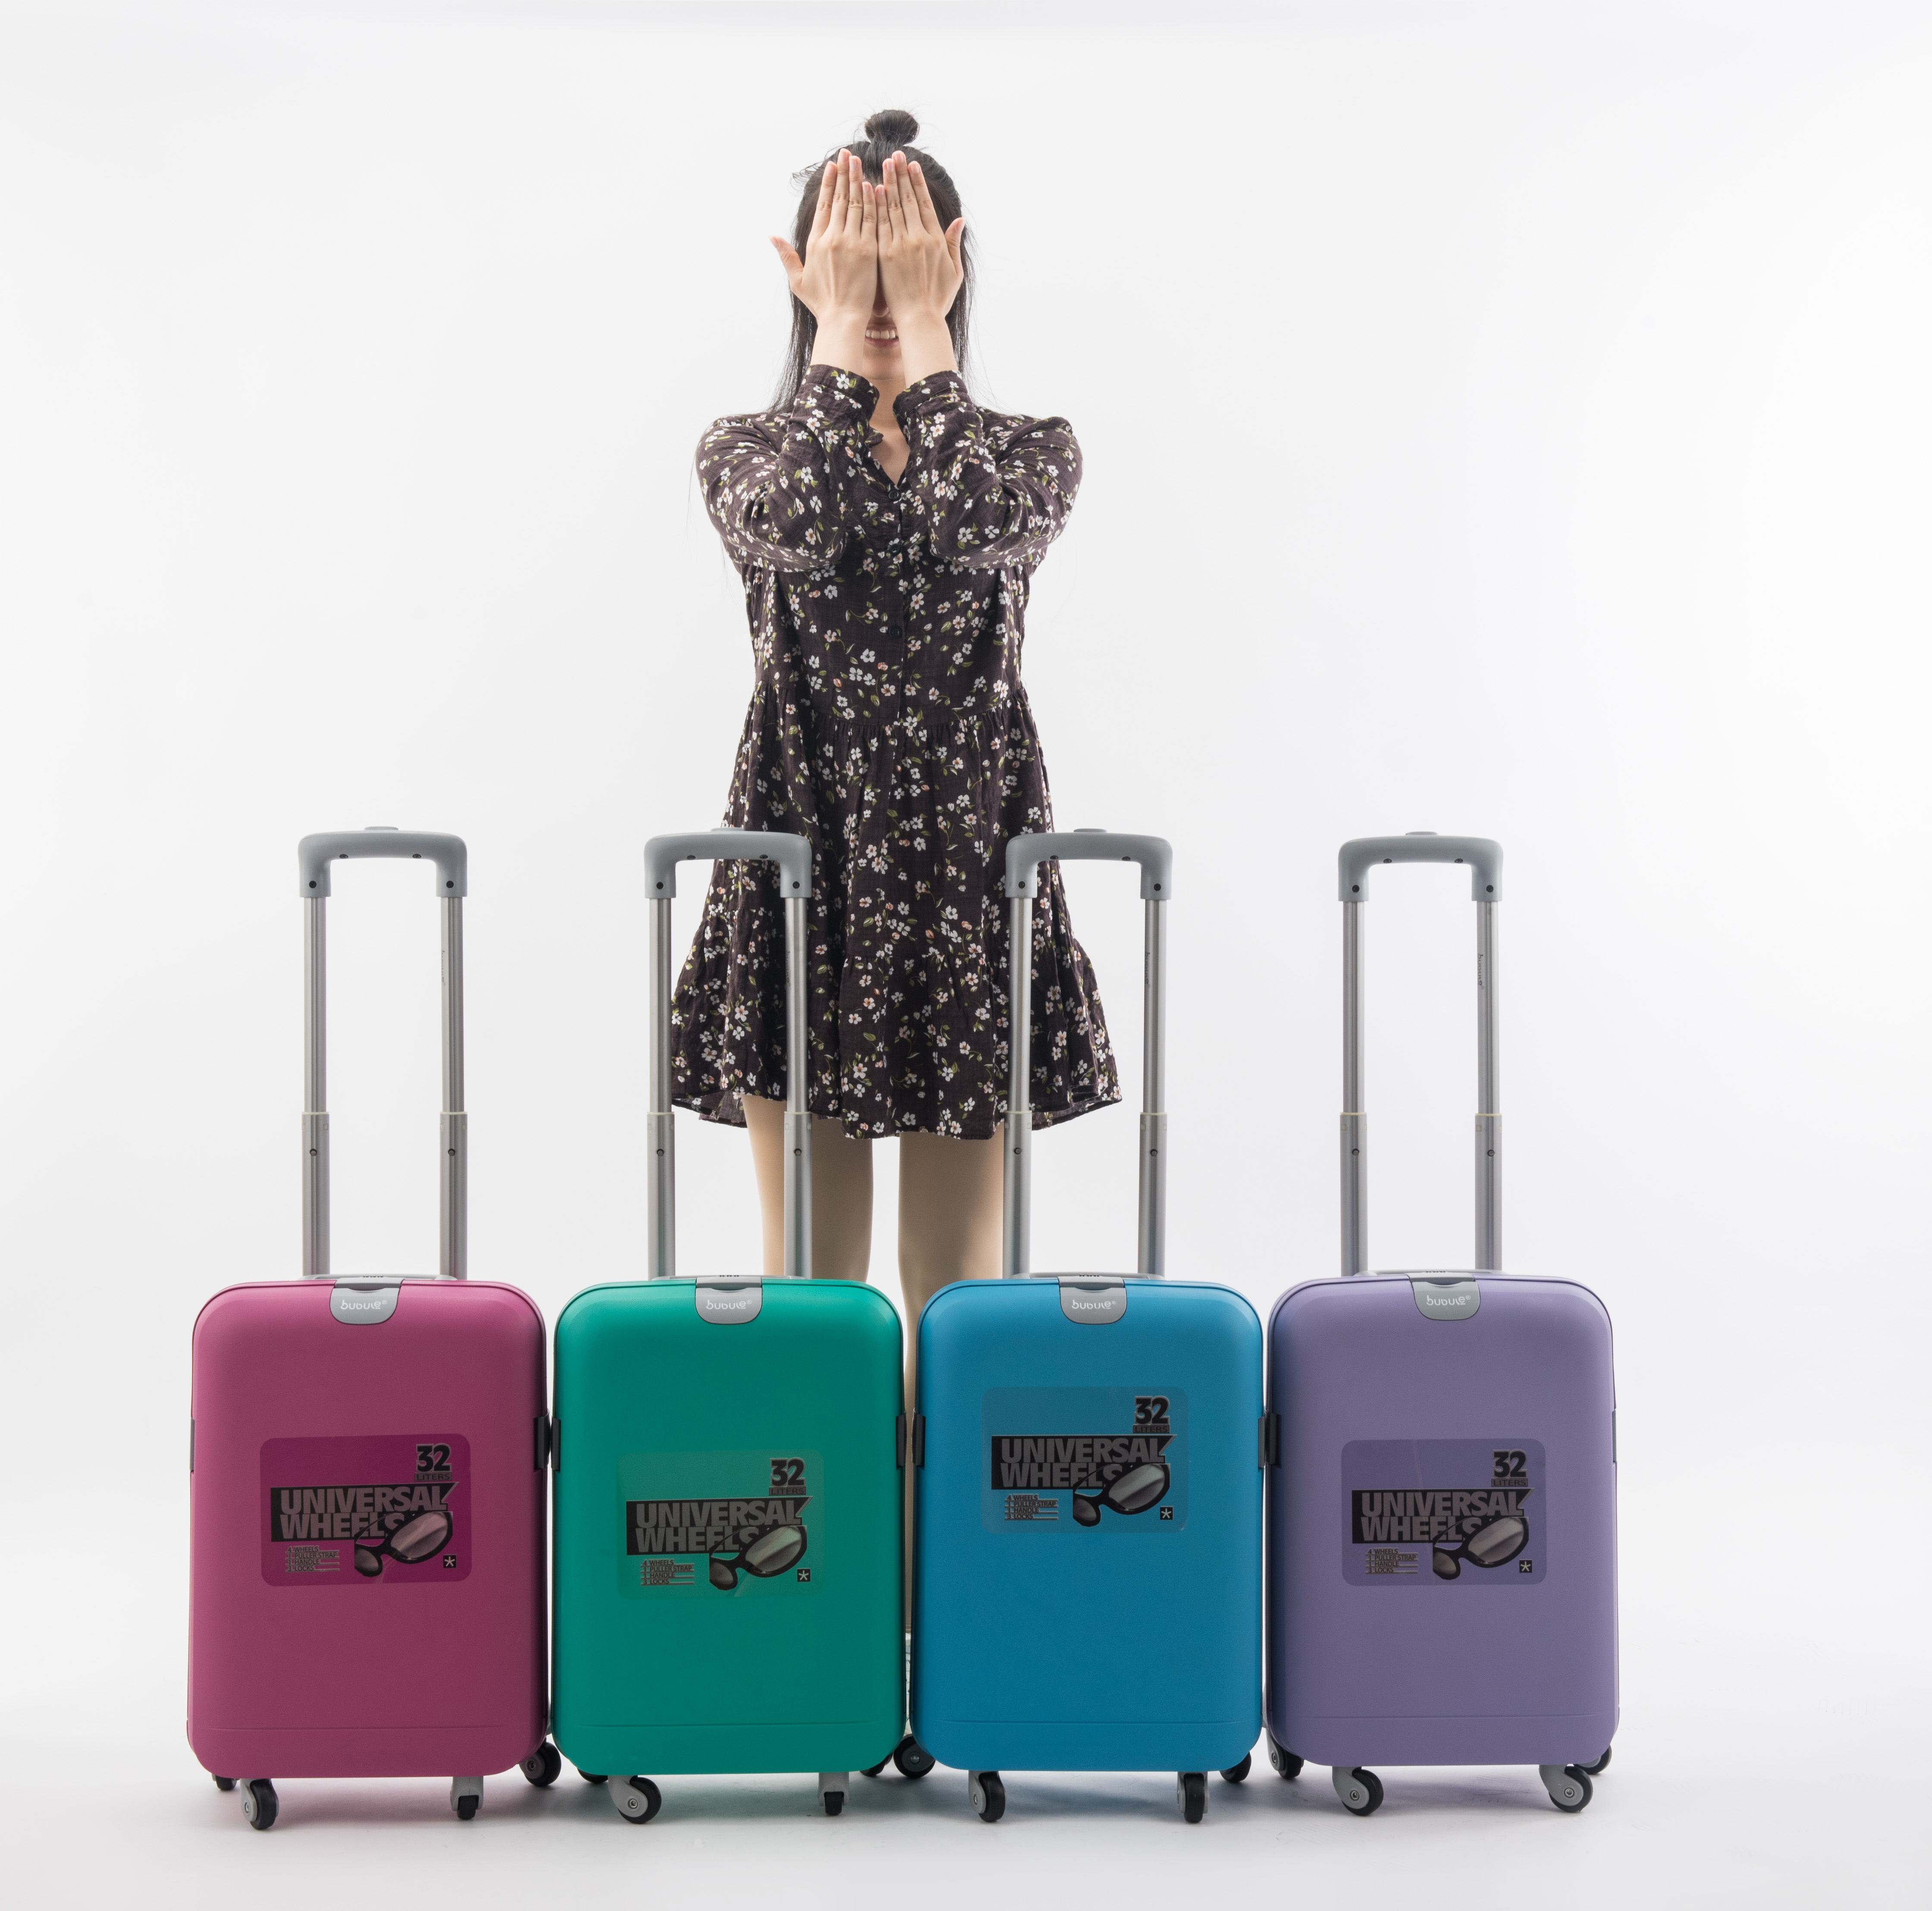 Fashion|2020 summer luggage bags popular colors